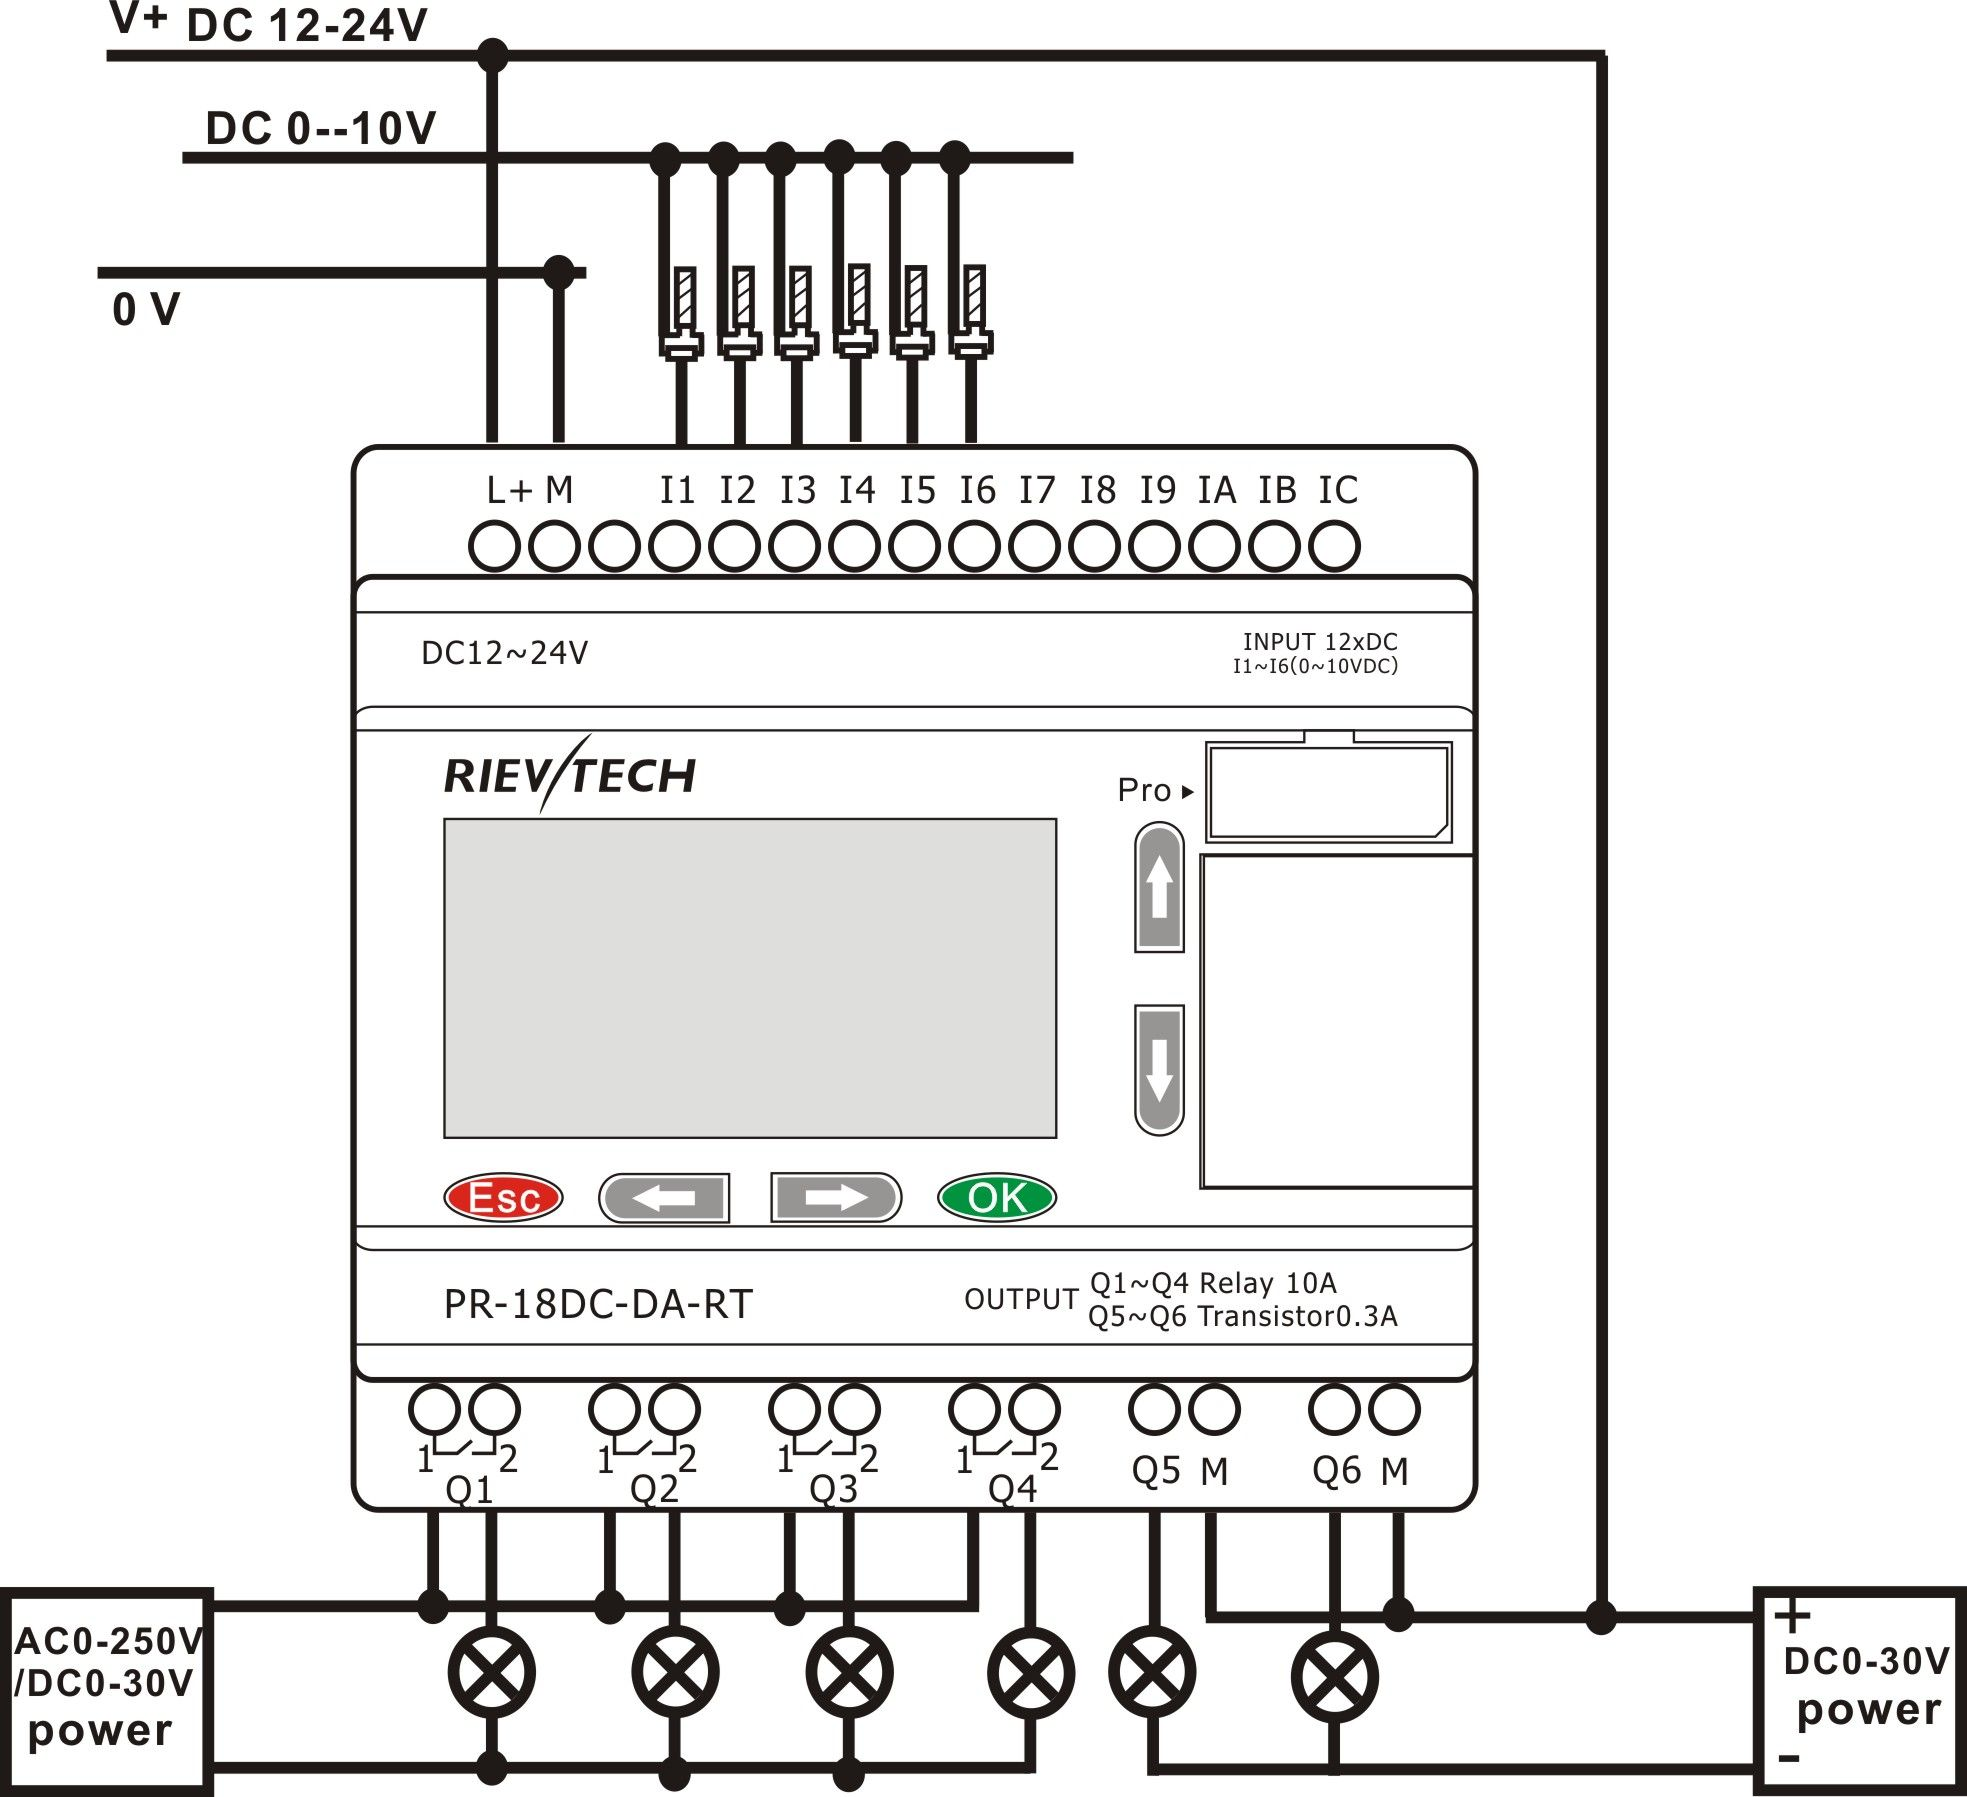 Wiring Diagram Phenomenal Plc Power Supply Pc With Networking Cables Power Electrical Panel